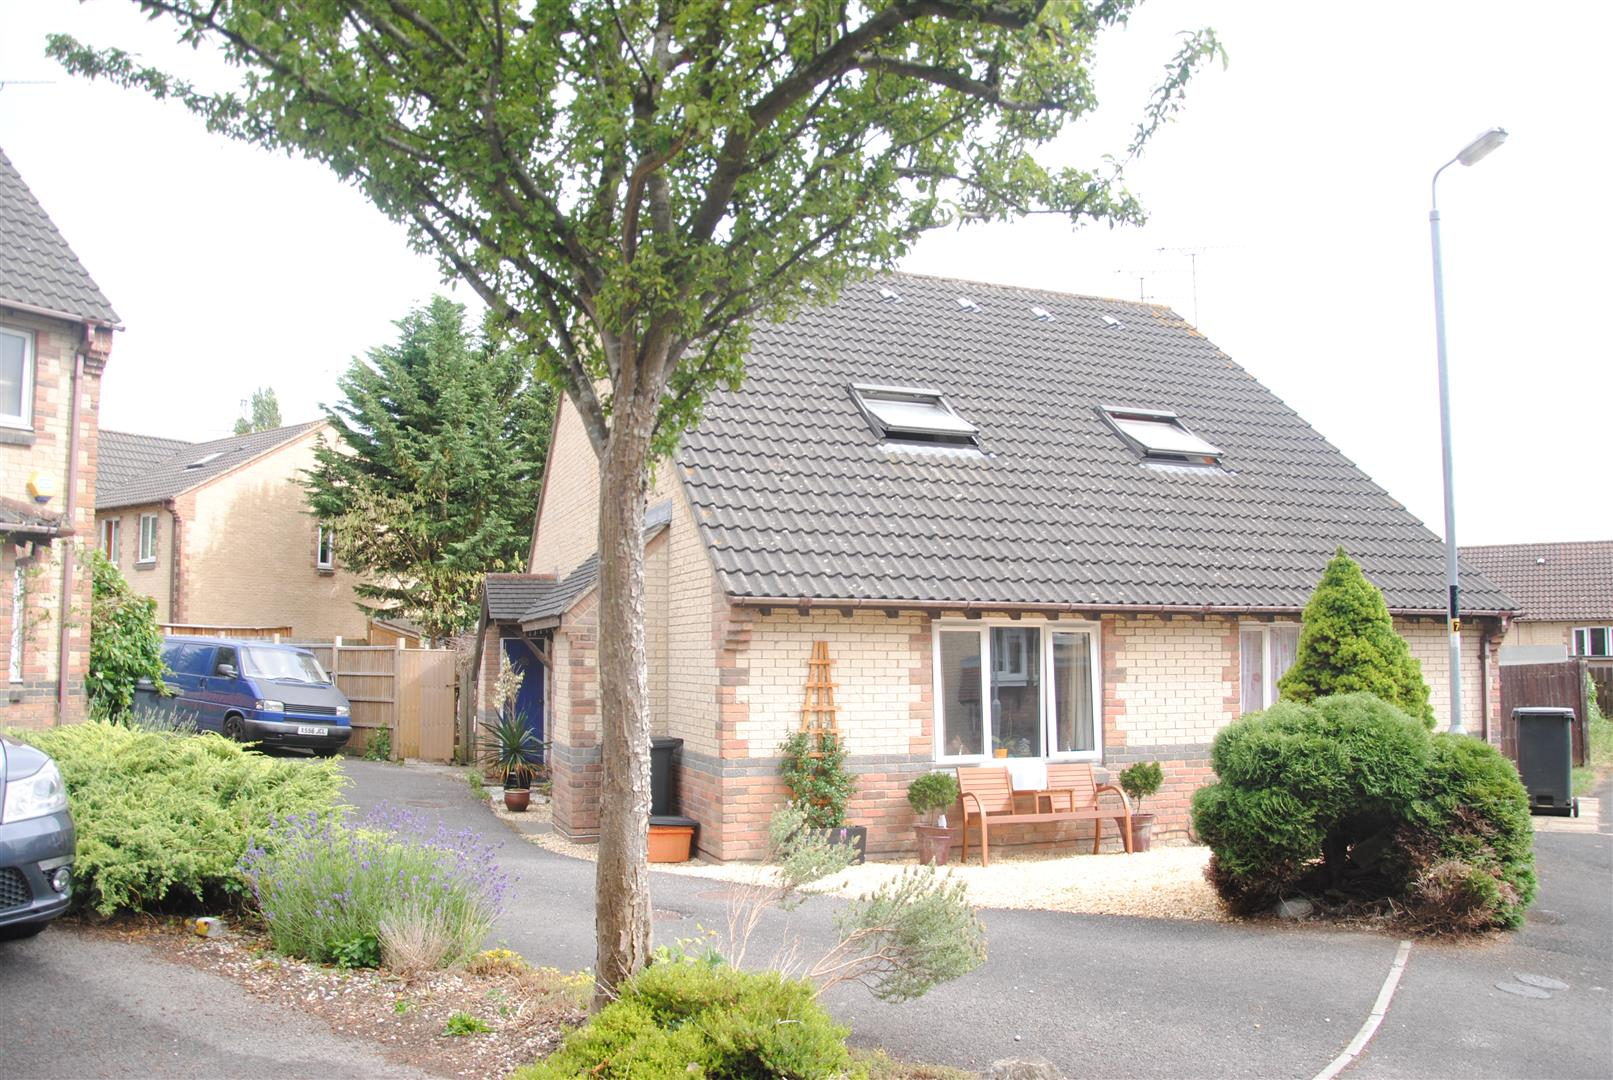 1 Bedroom Property for sale in Periwinkle Close, Swindon